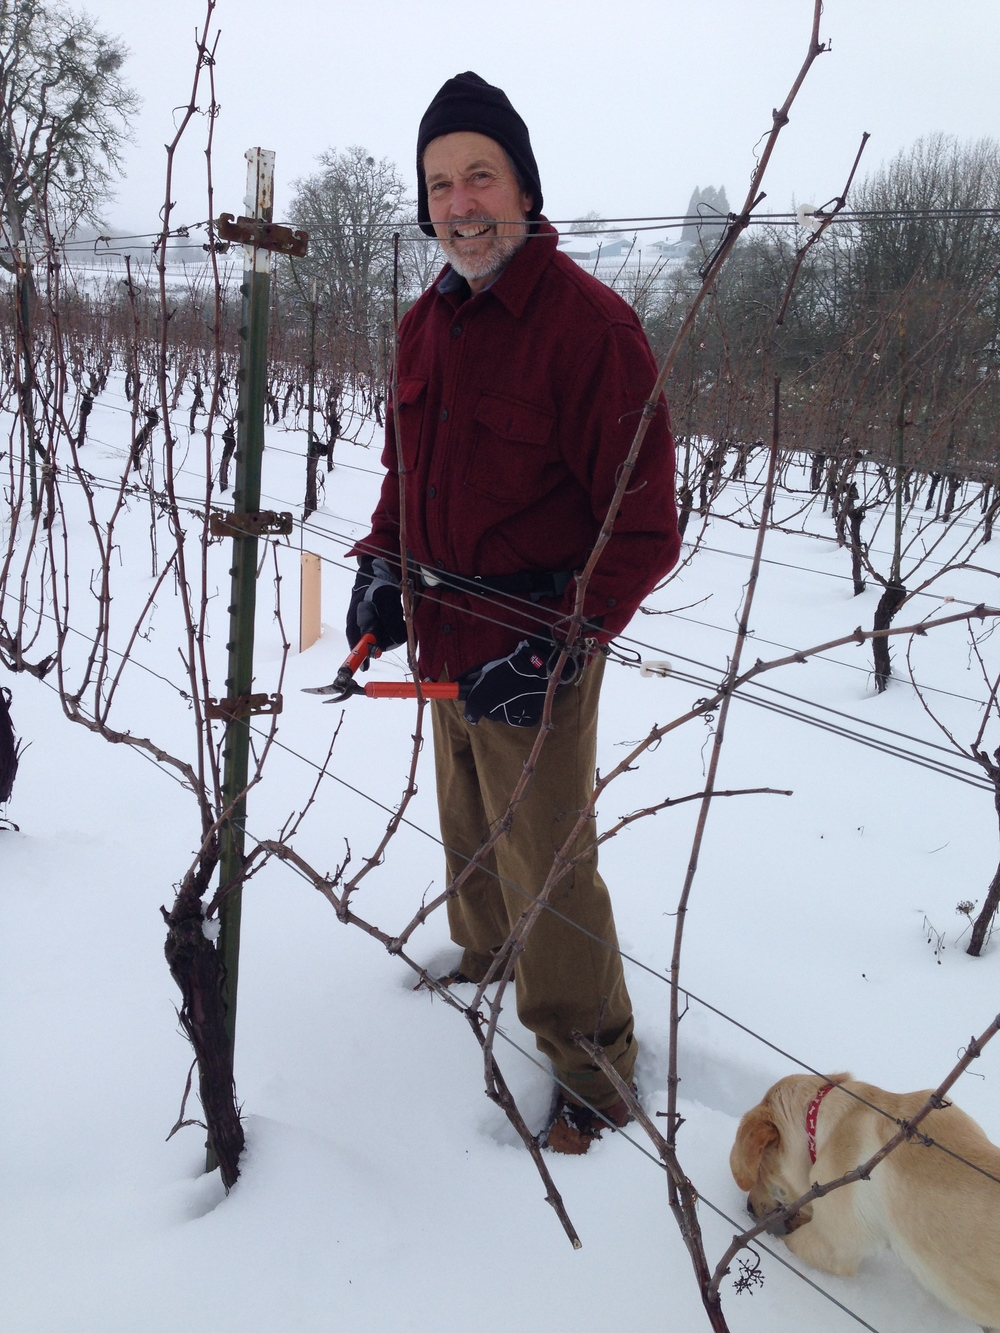 Mark Huff in his vineyard